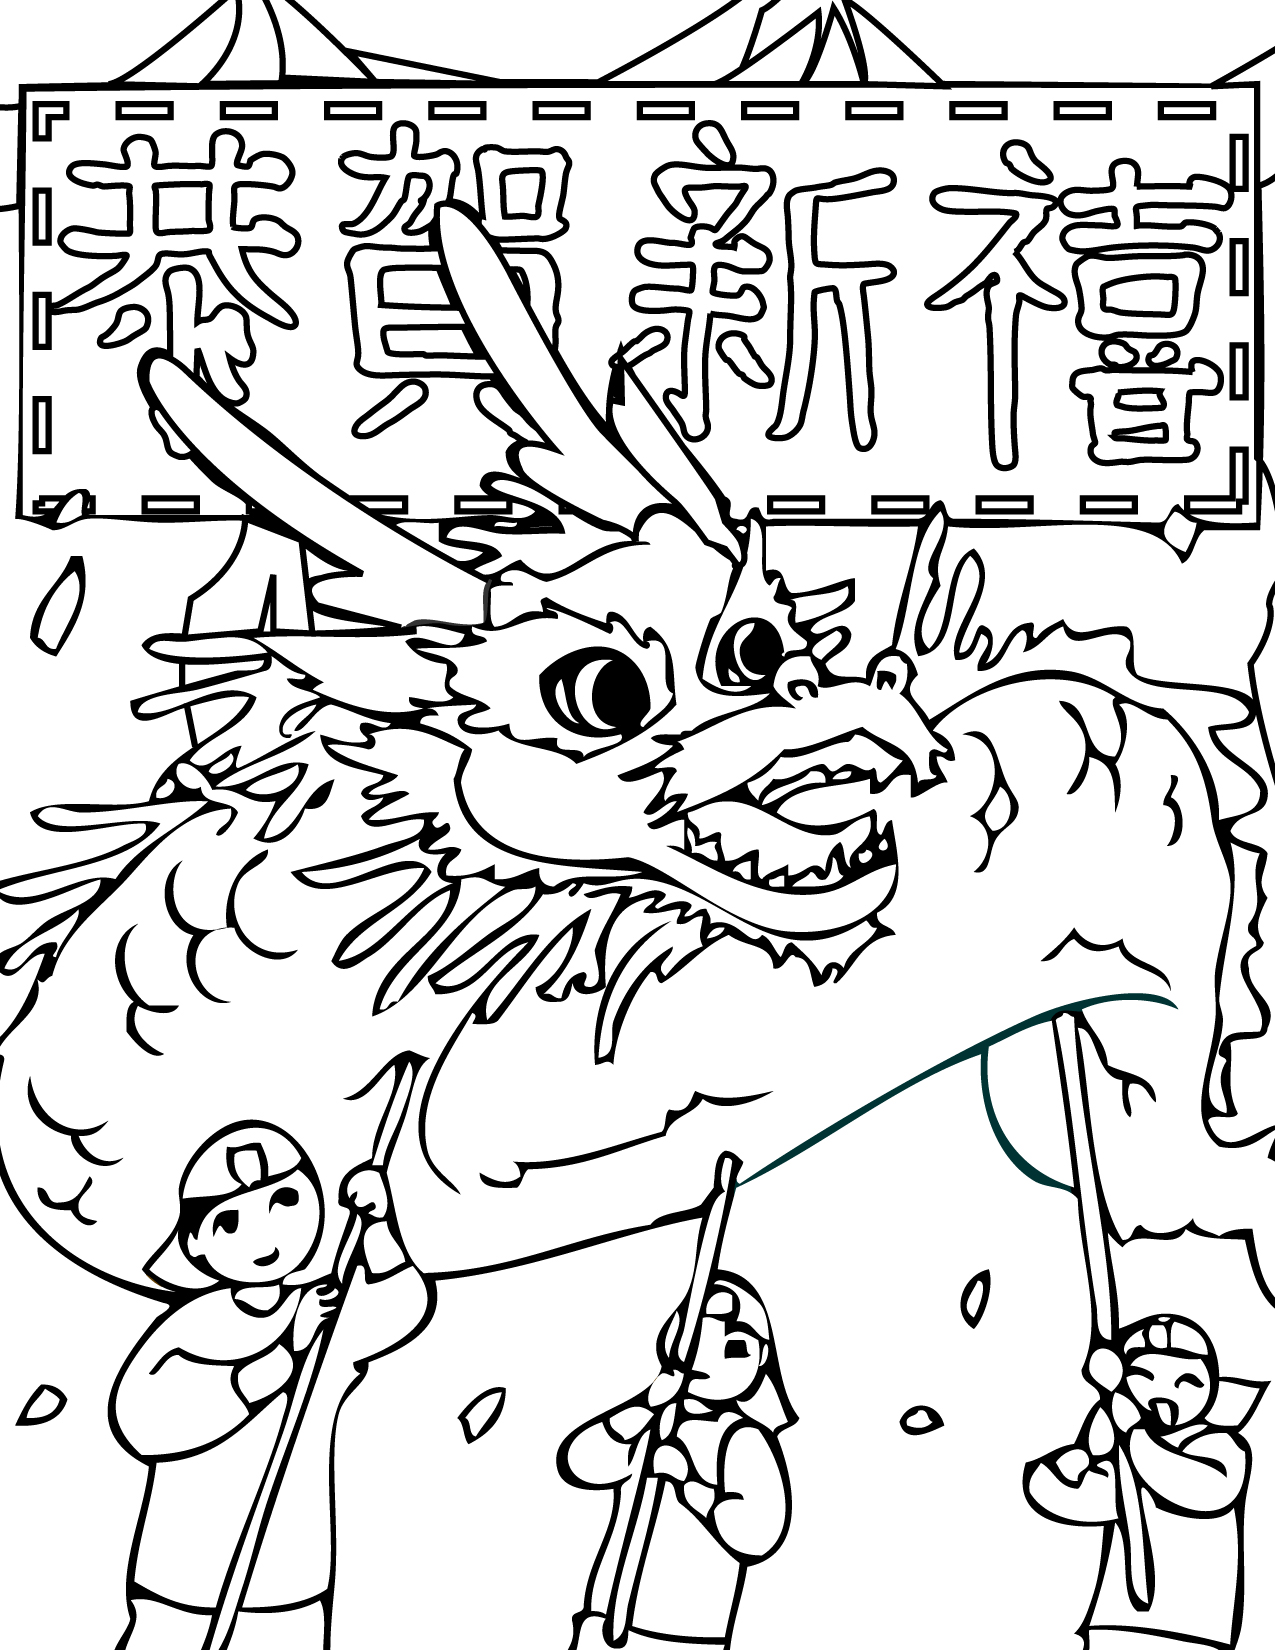 chinese colouring sheets printable chinese new year coloring pages for kids colouring sheets chinese